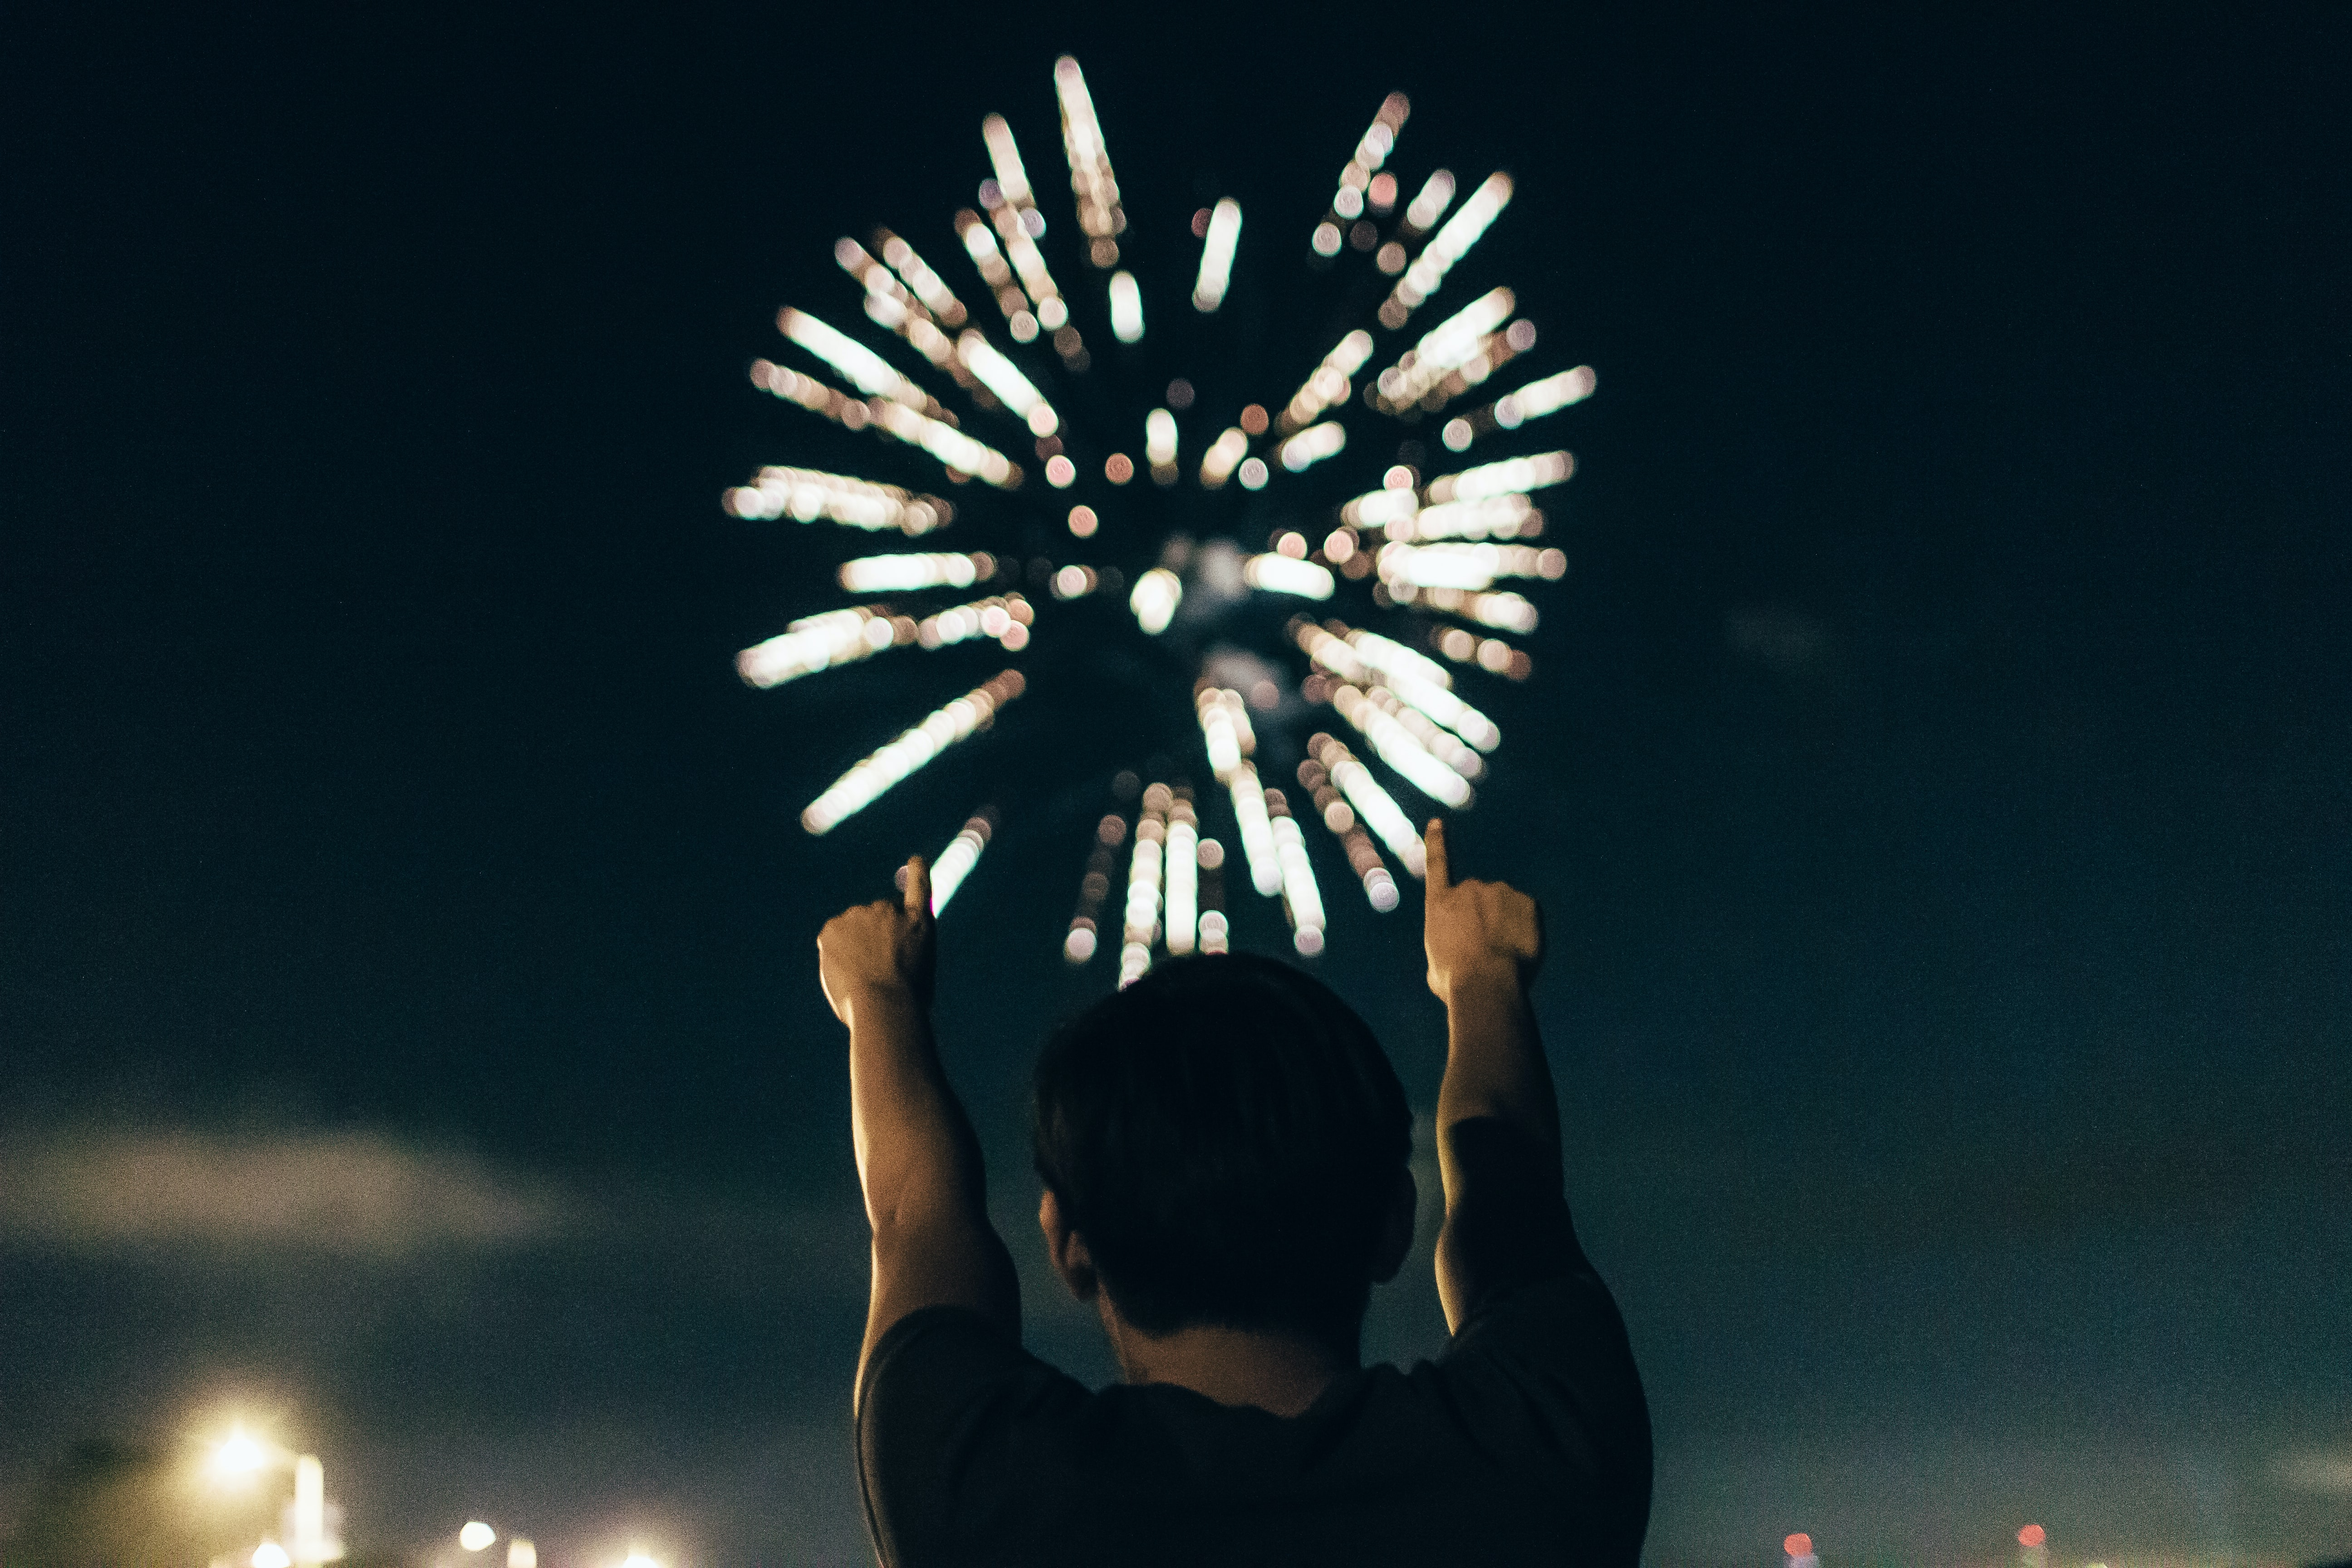 man in black shirt pointing towards brocade fireworks in the skies